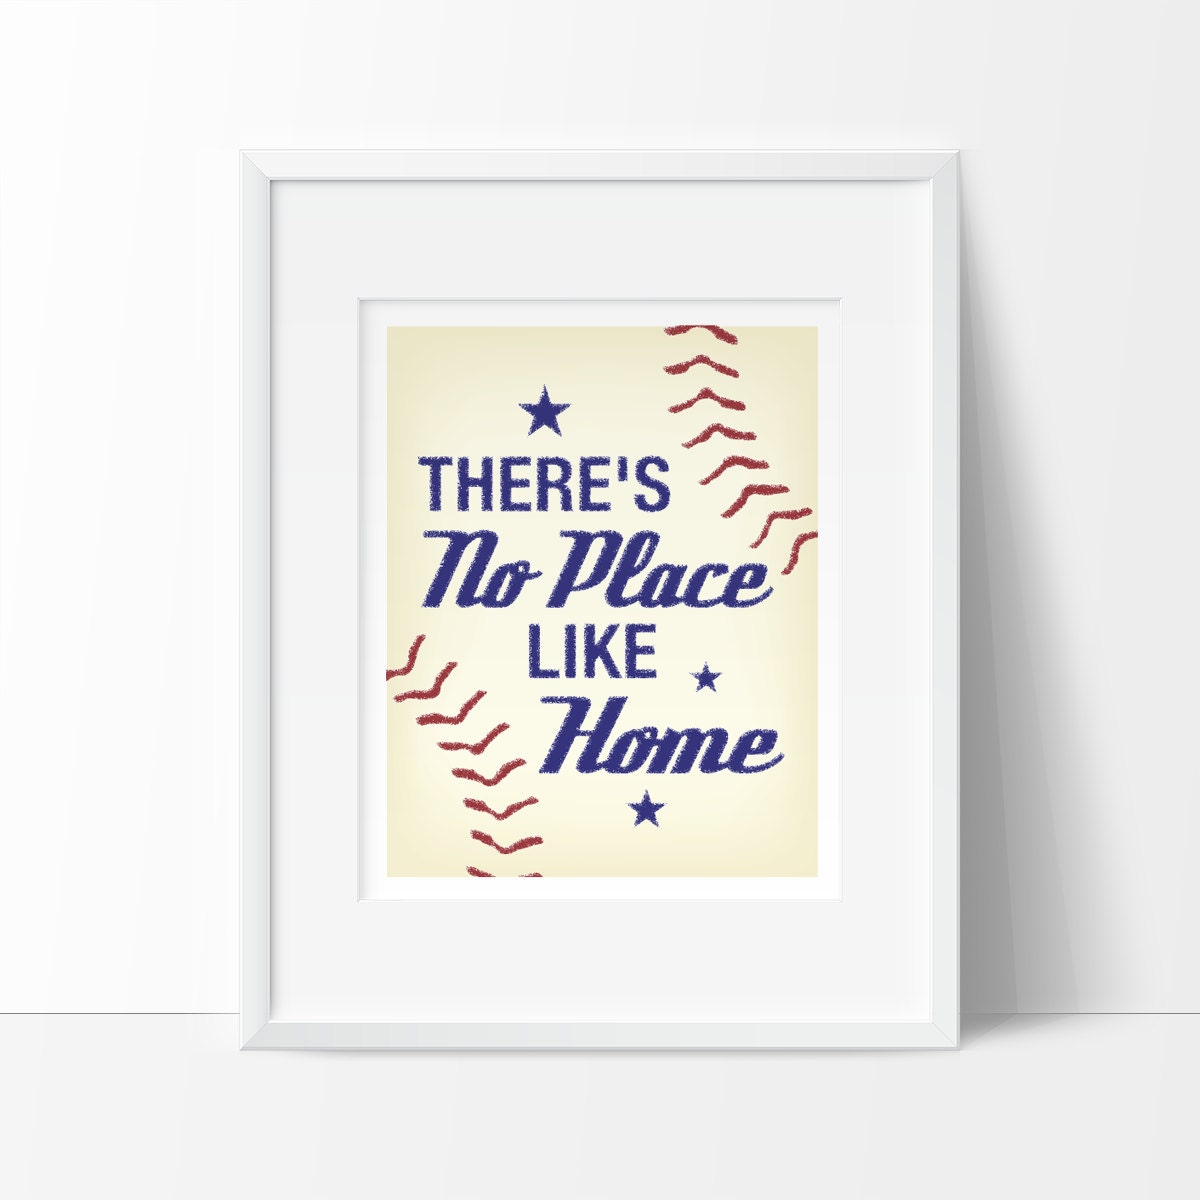 Theres No Place Like Home INSTANT DOWNLOAD Baseball Nursery